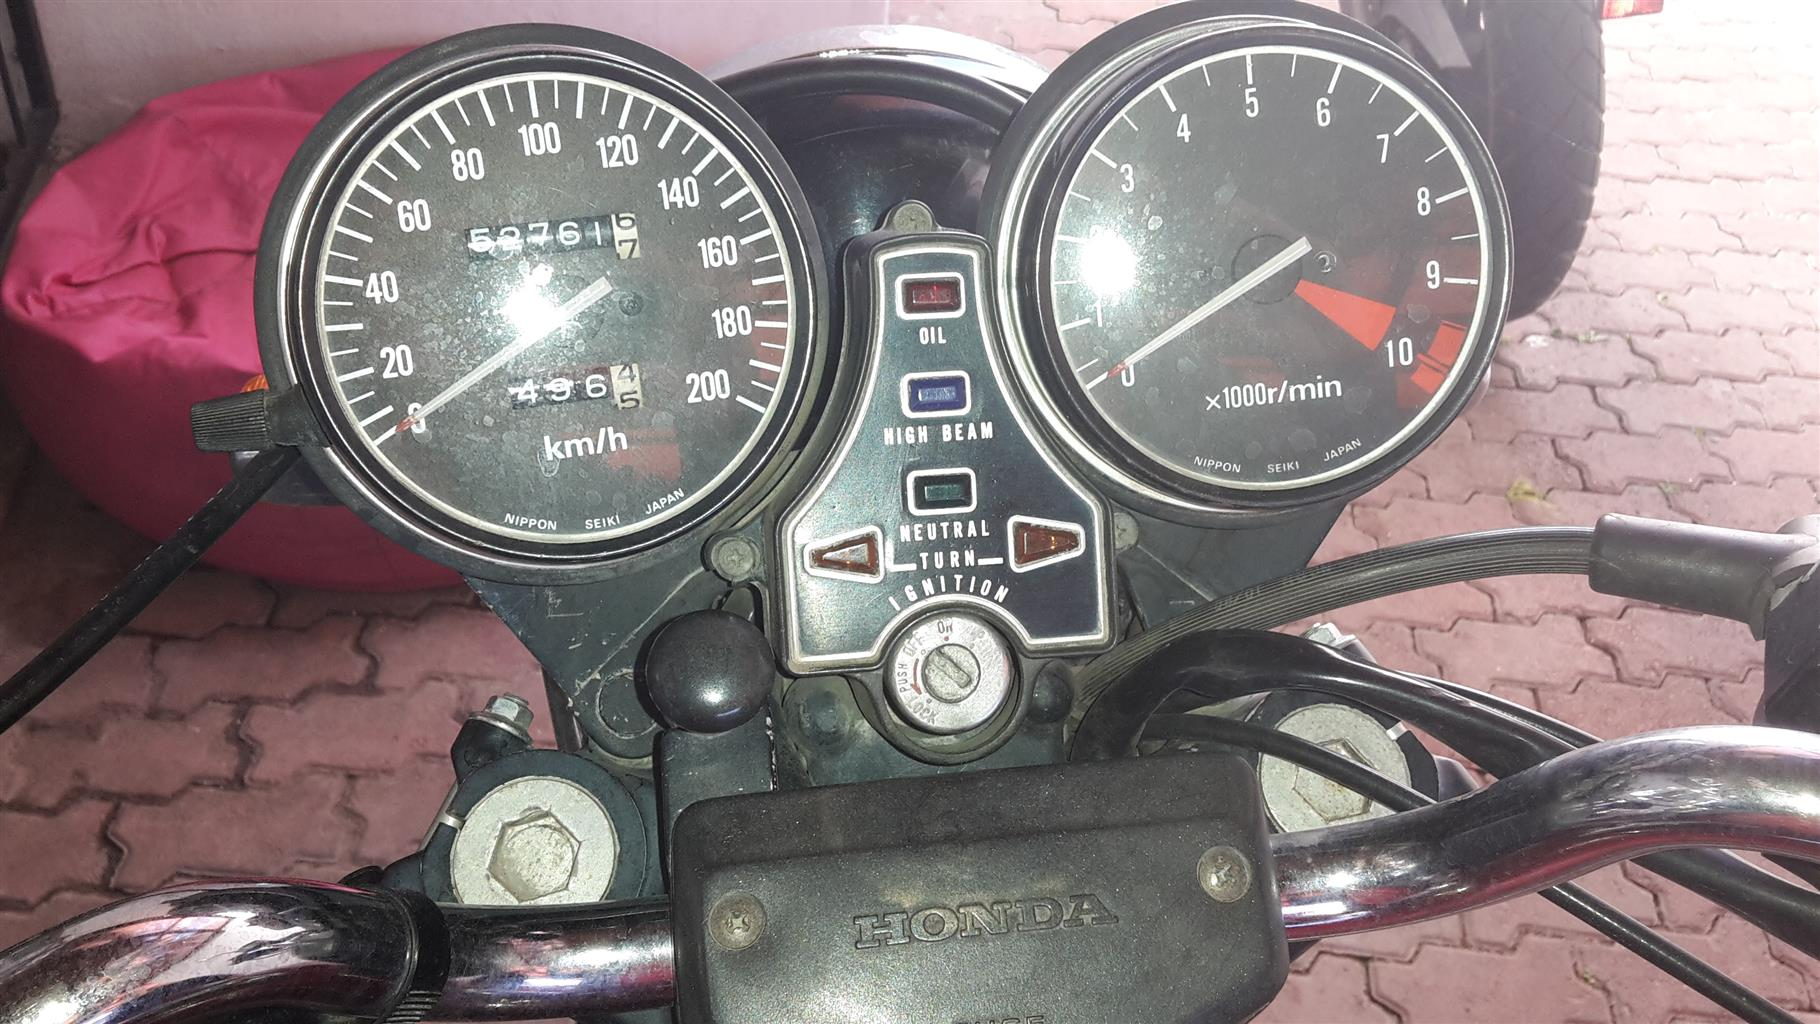 I am selling my 1980 Honda cb650 in an excellent condition